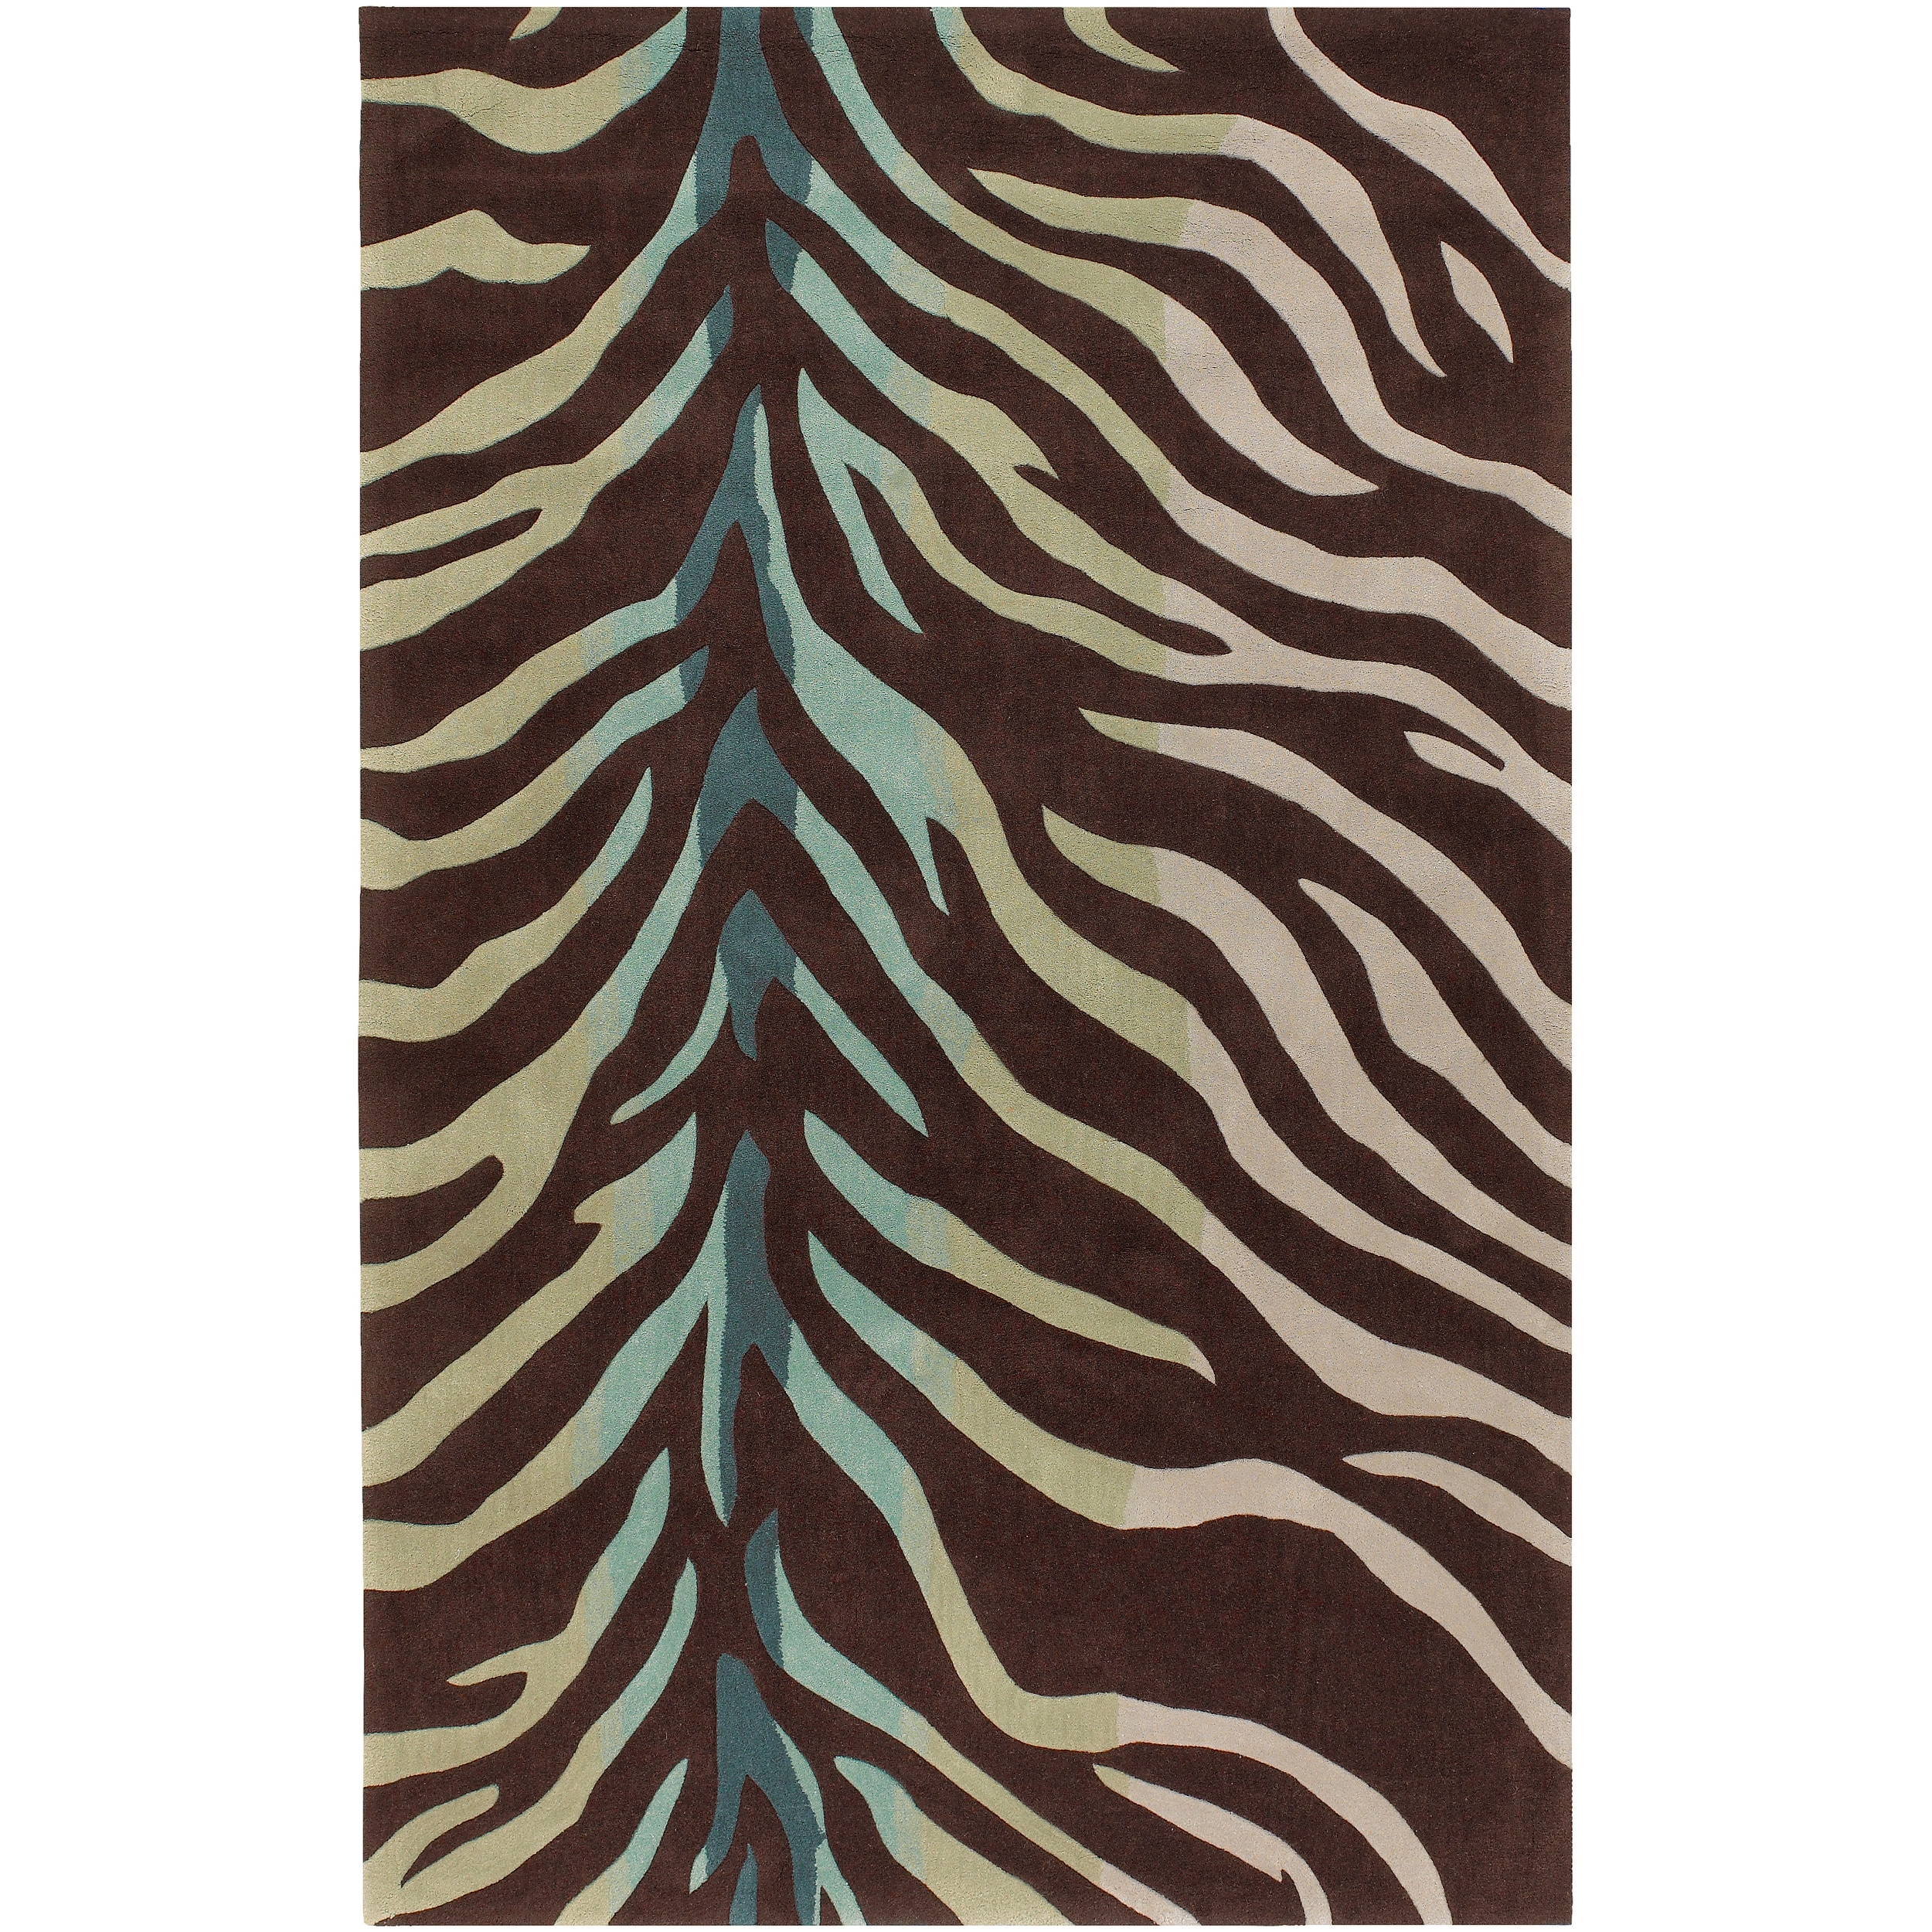 100 antelope print area rug amazon com animal print door ma